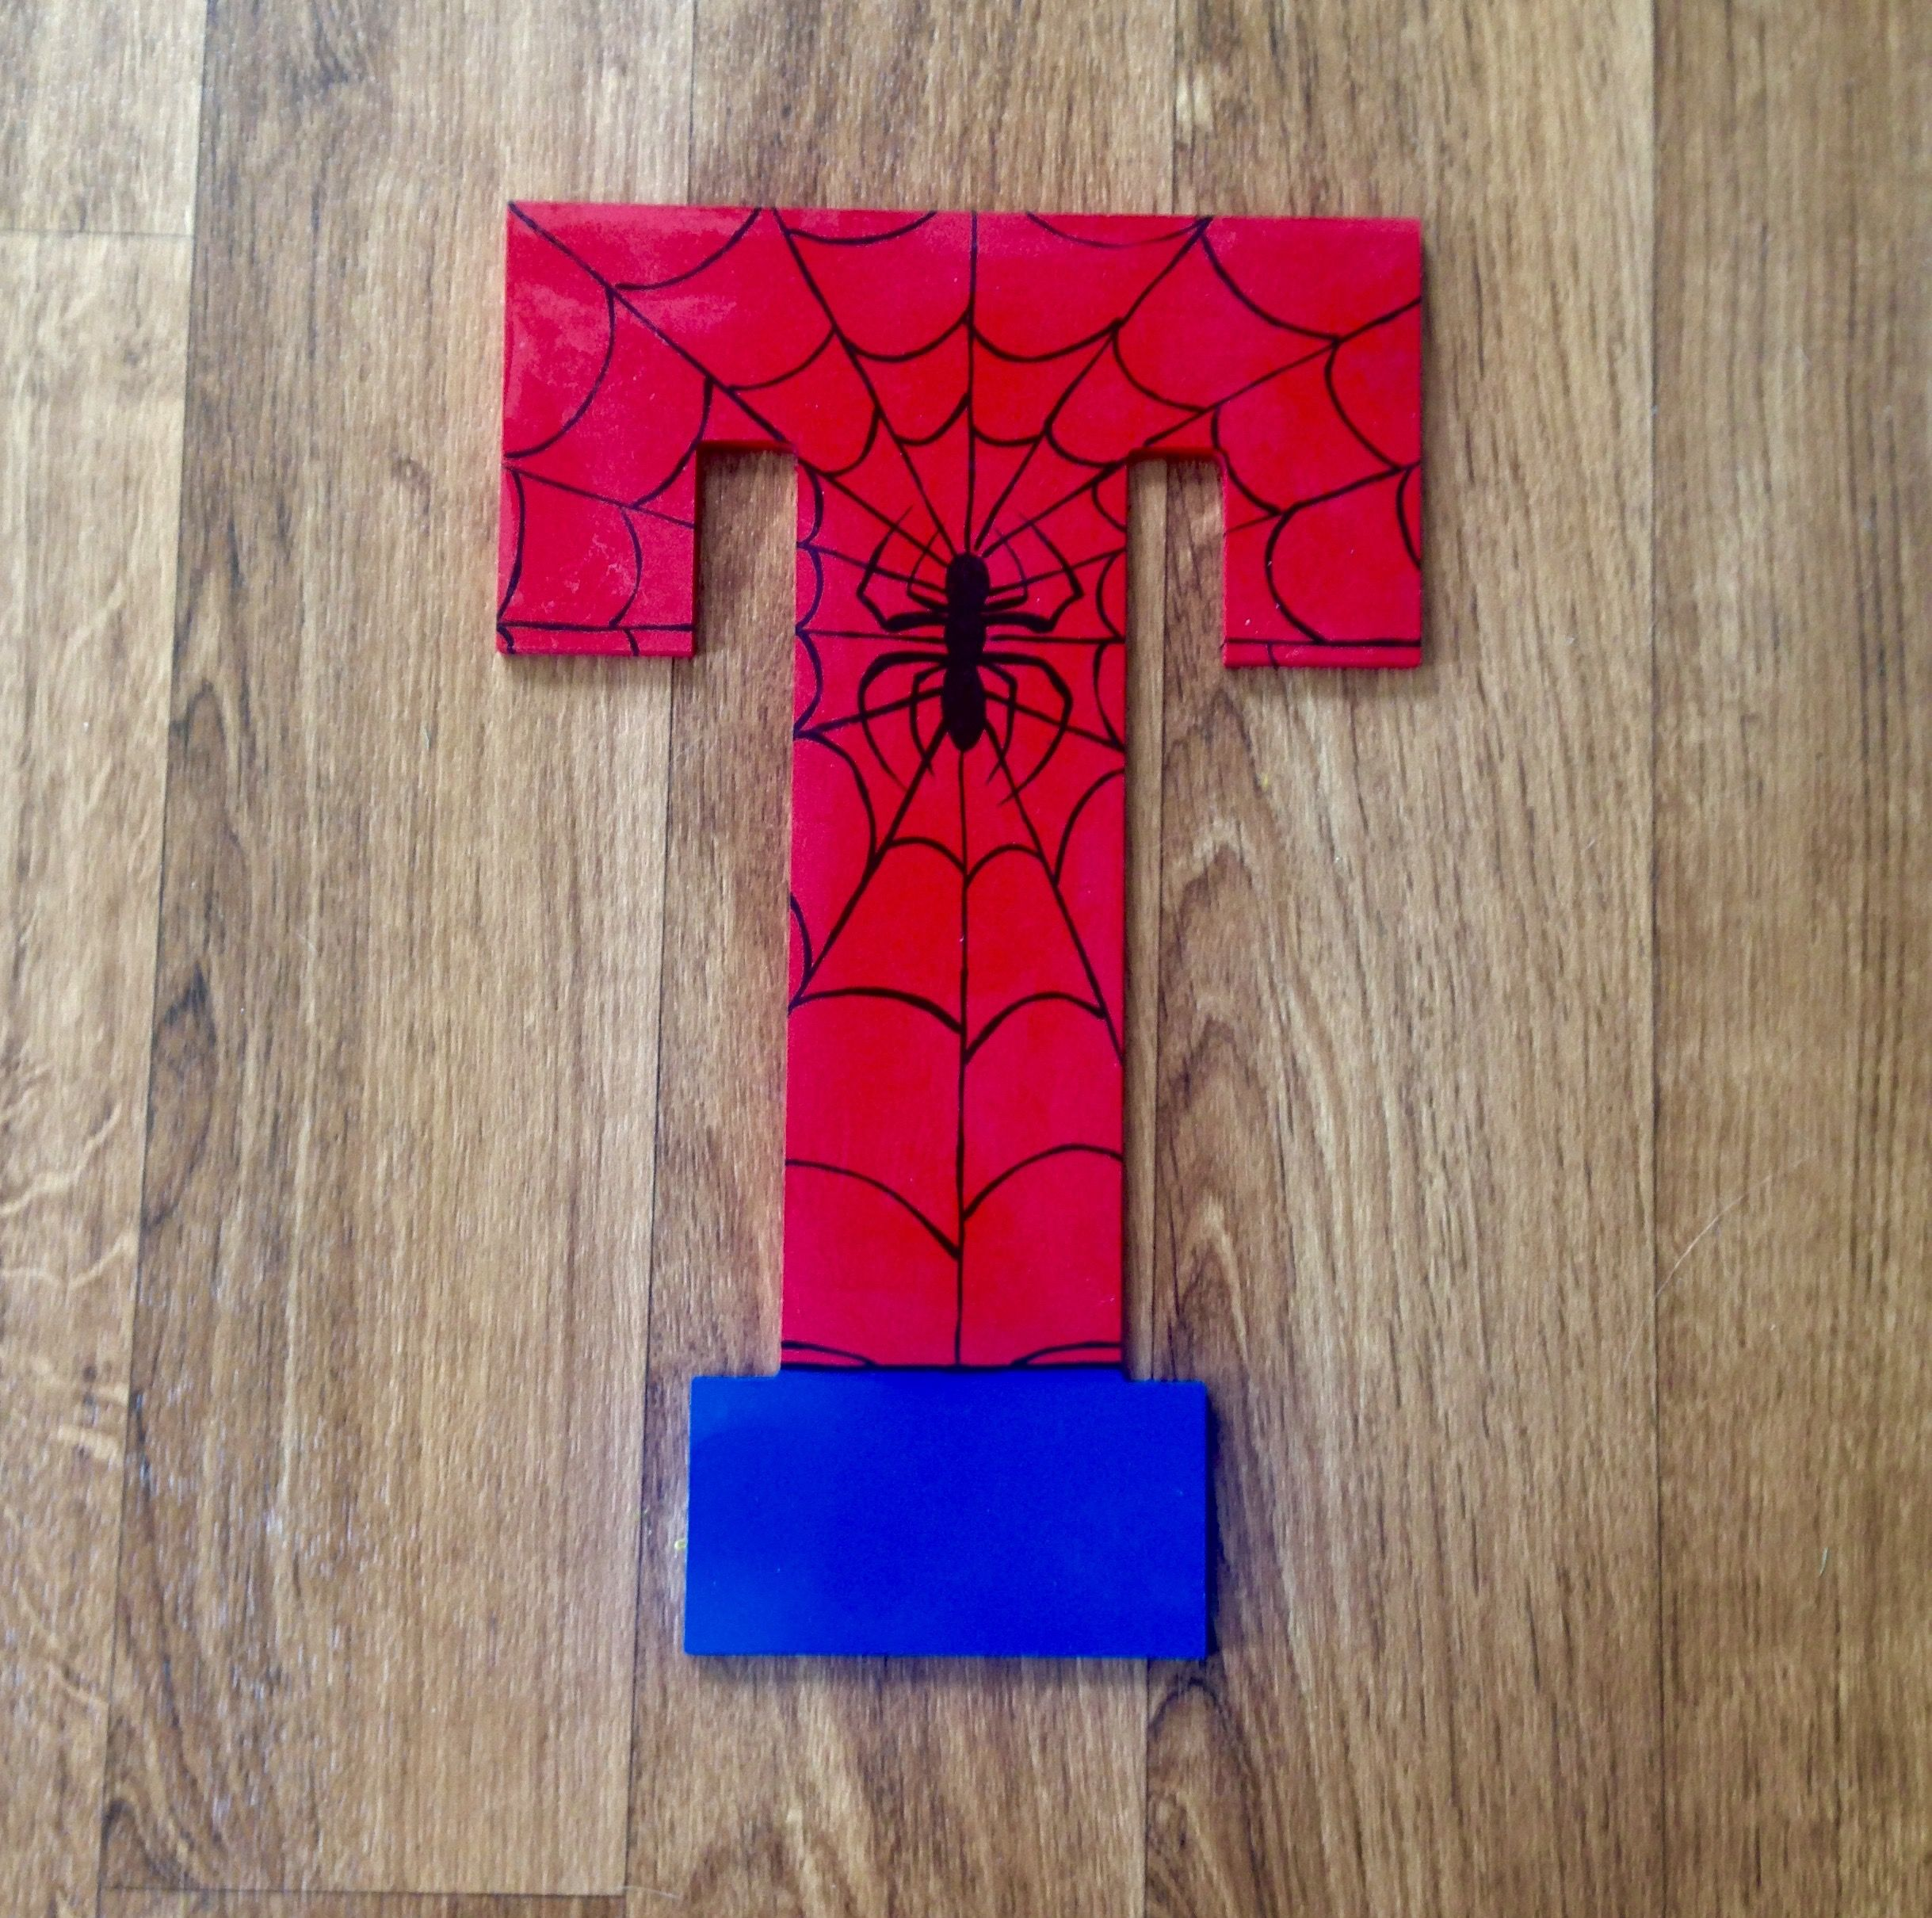 Spiderman Wall Decor spiderman wooden letters, wall decor | wooden superhero letters